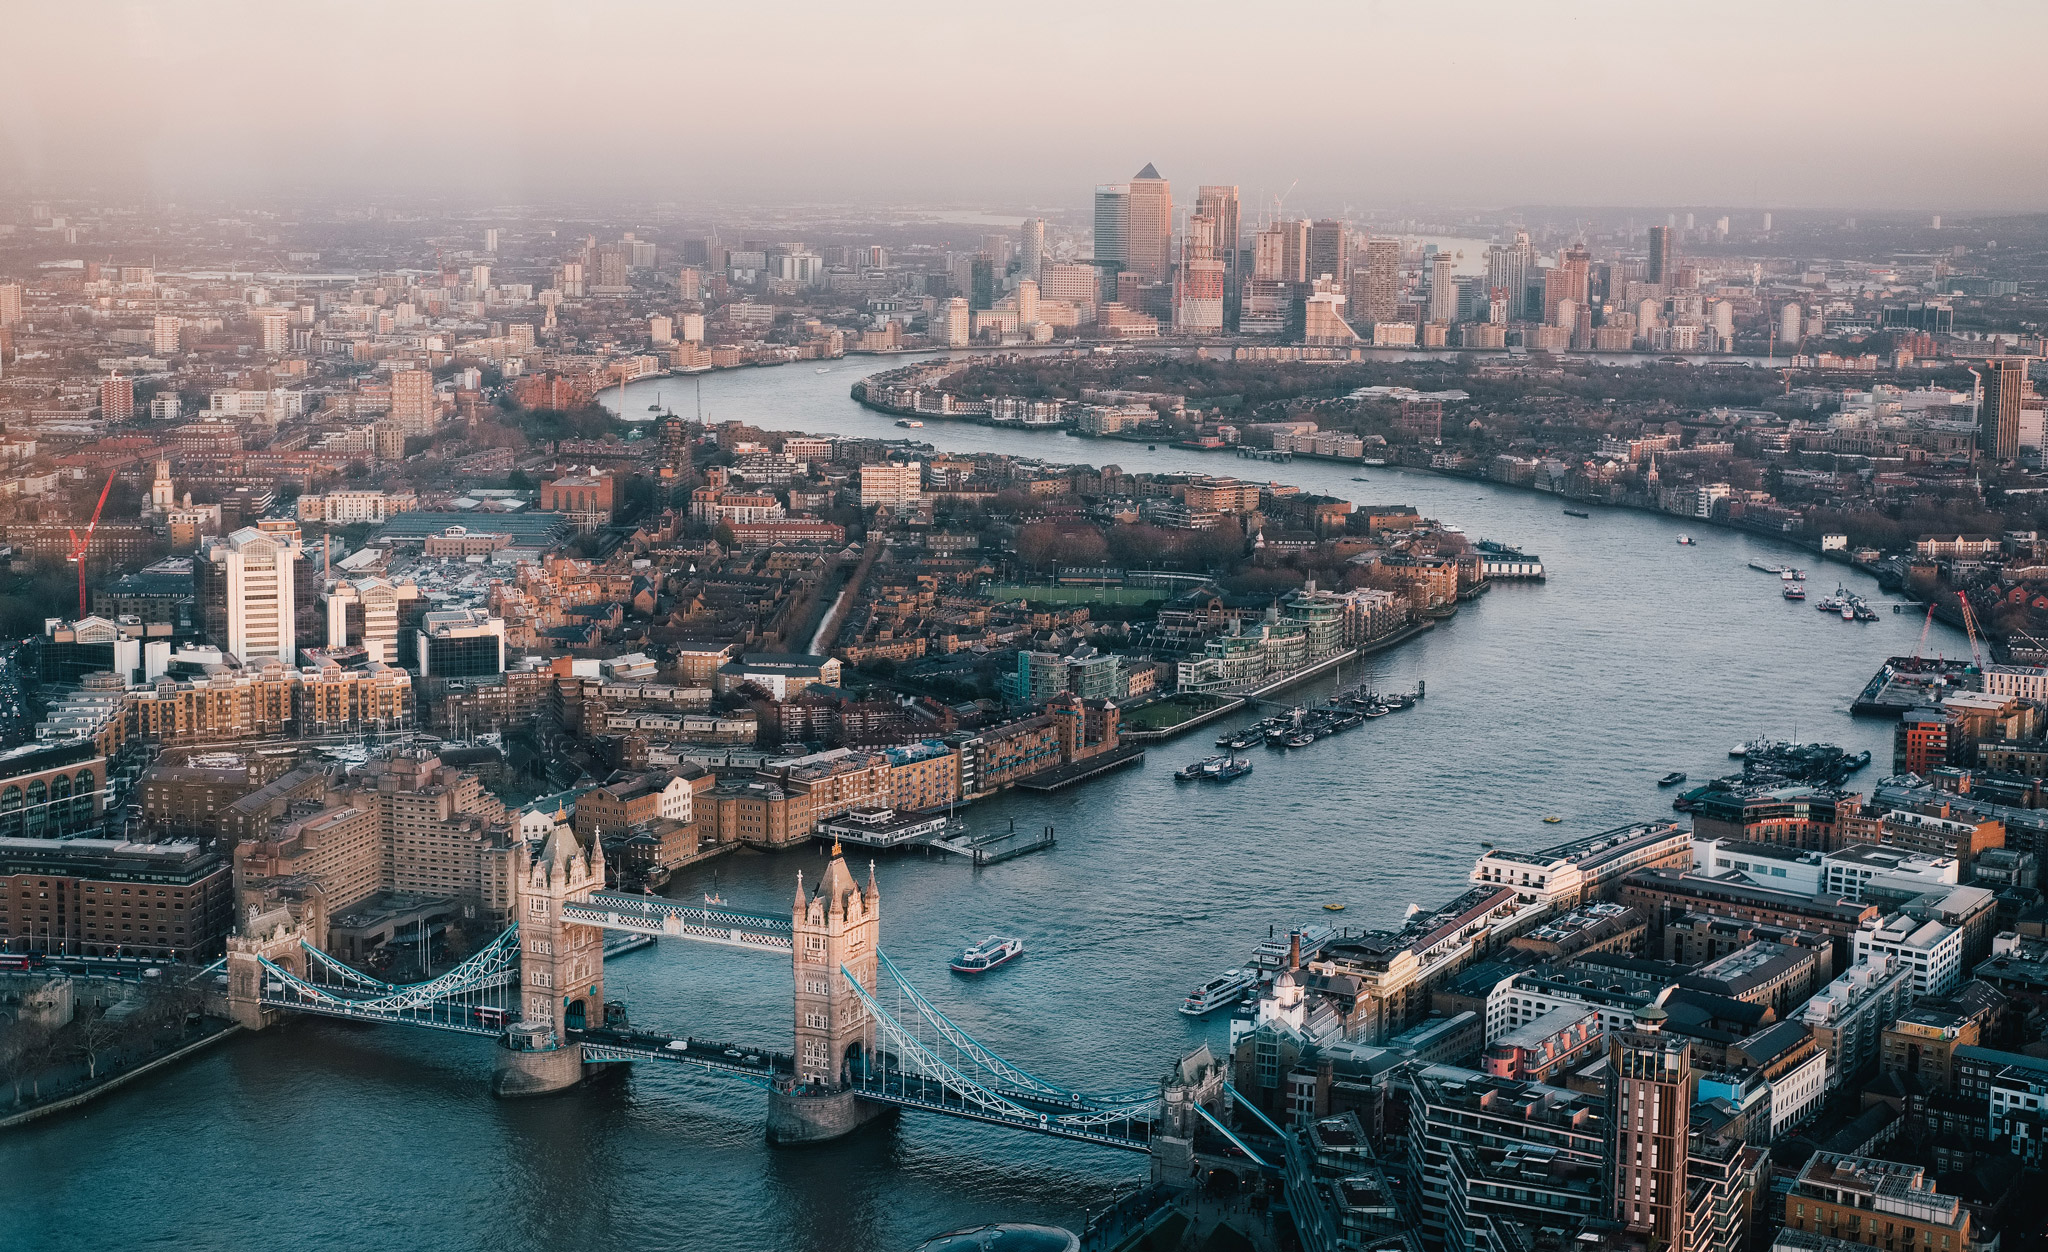 Early morning view of London